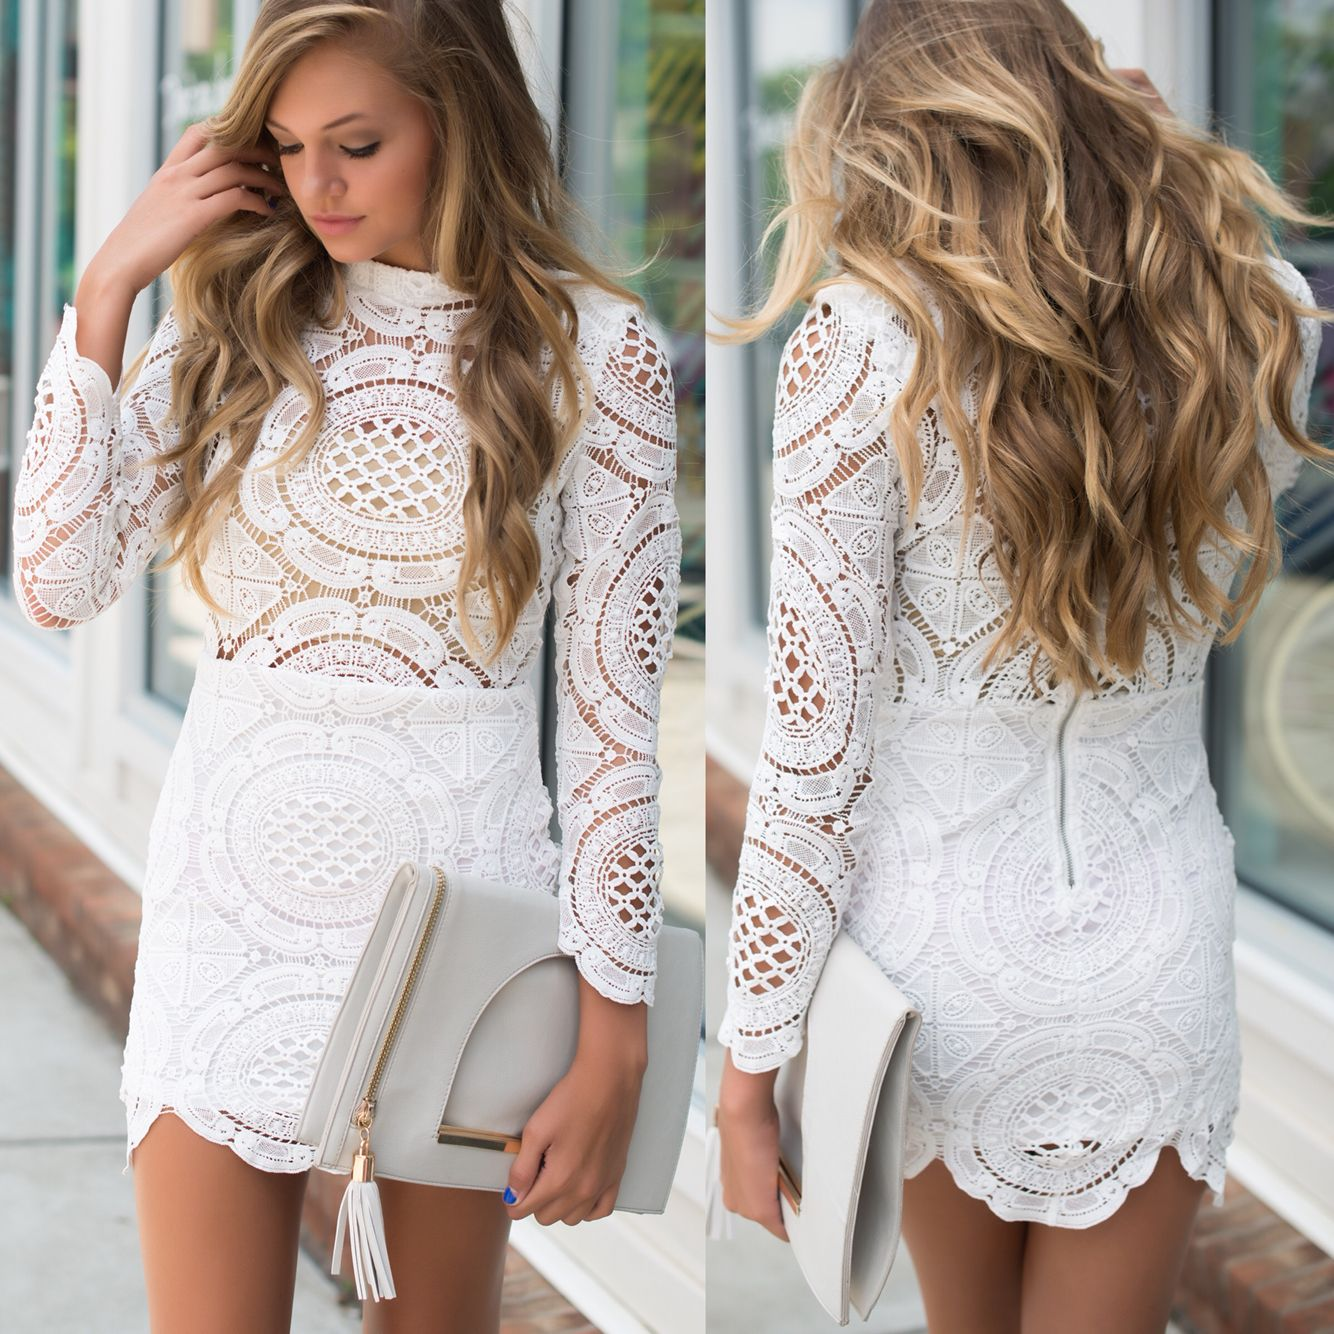 Lace dress #swoonboutique